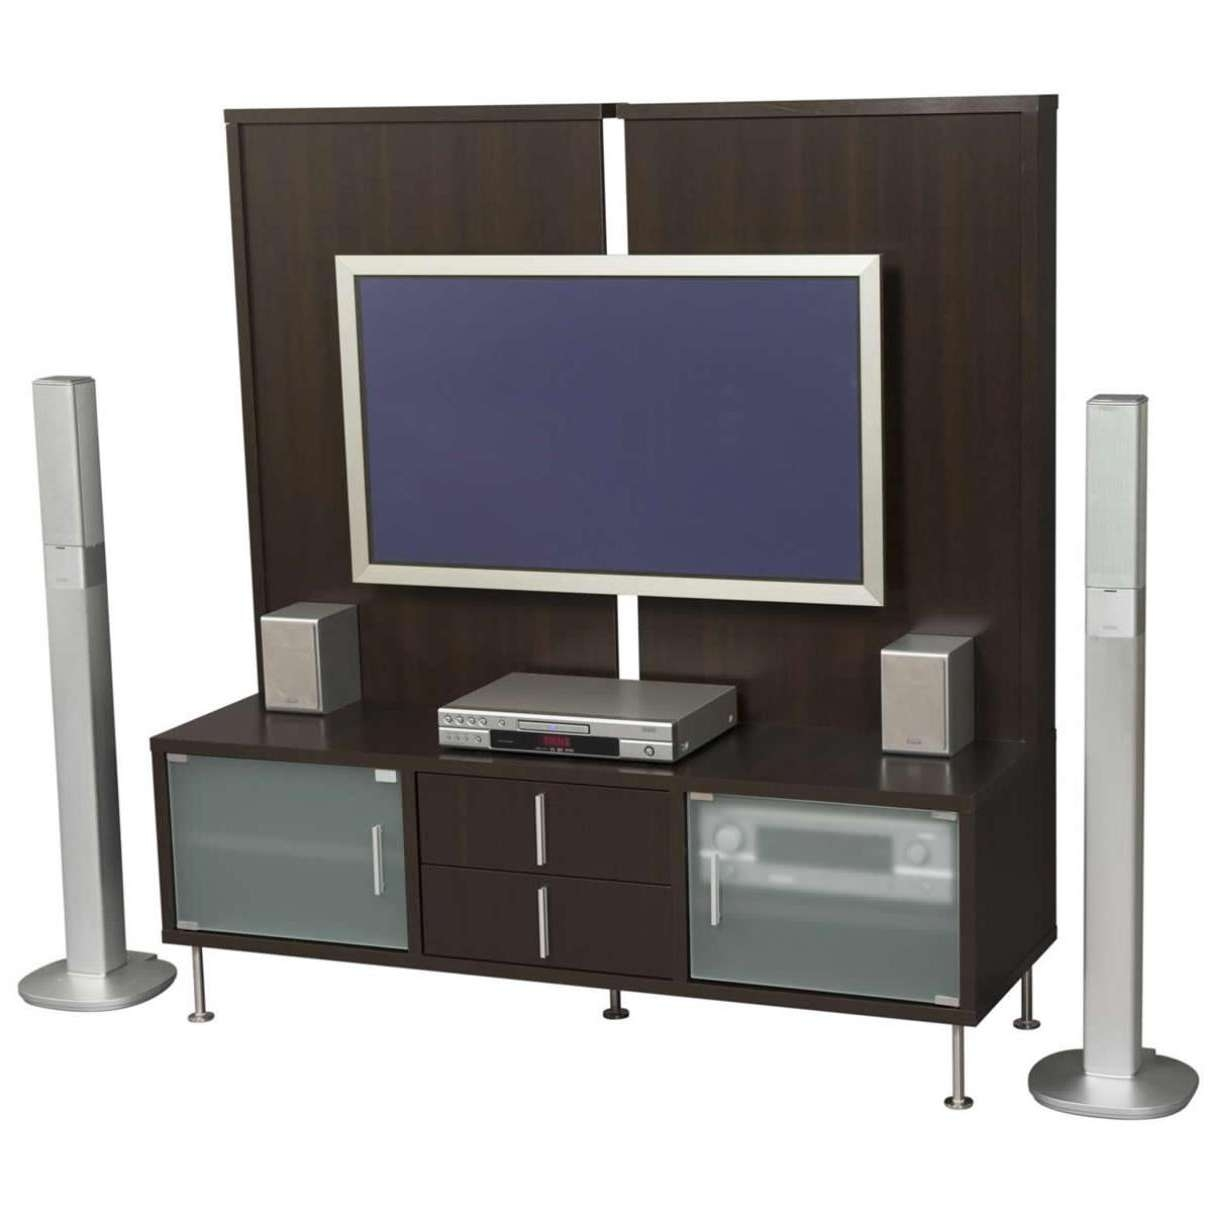 Tv Stand : 44 Marvelous At Home Tv Stand Images Ideas Tv Stands Regarding Sleek Tv Stands (View 9 of 15)